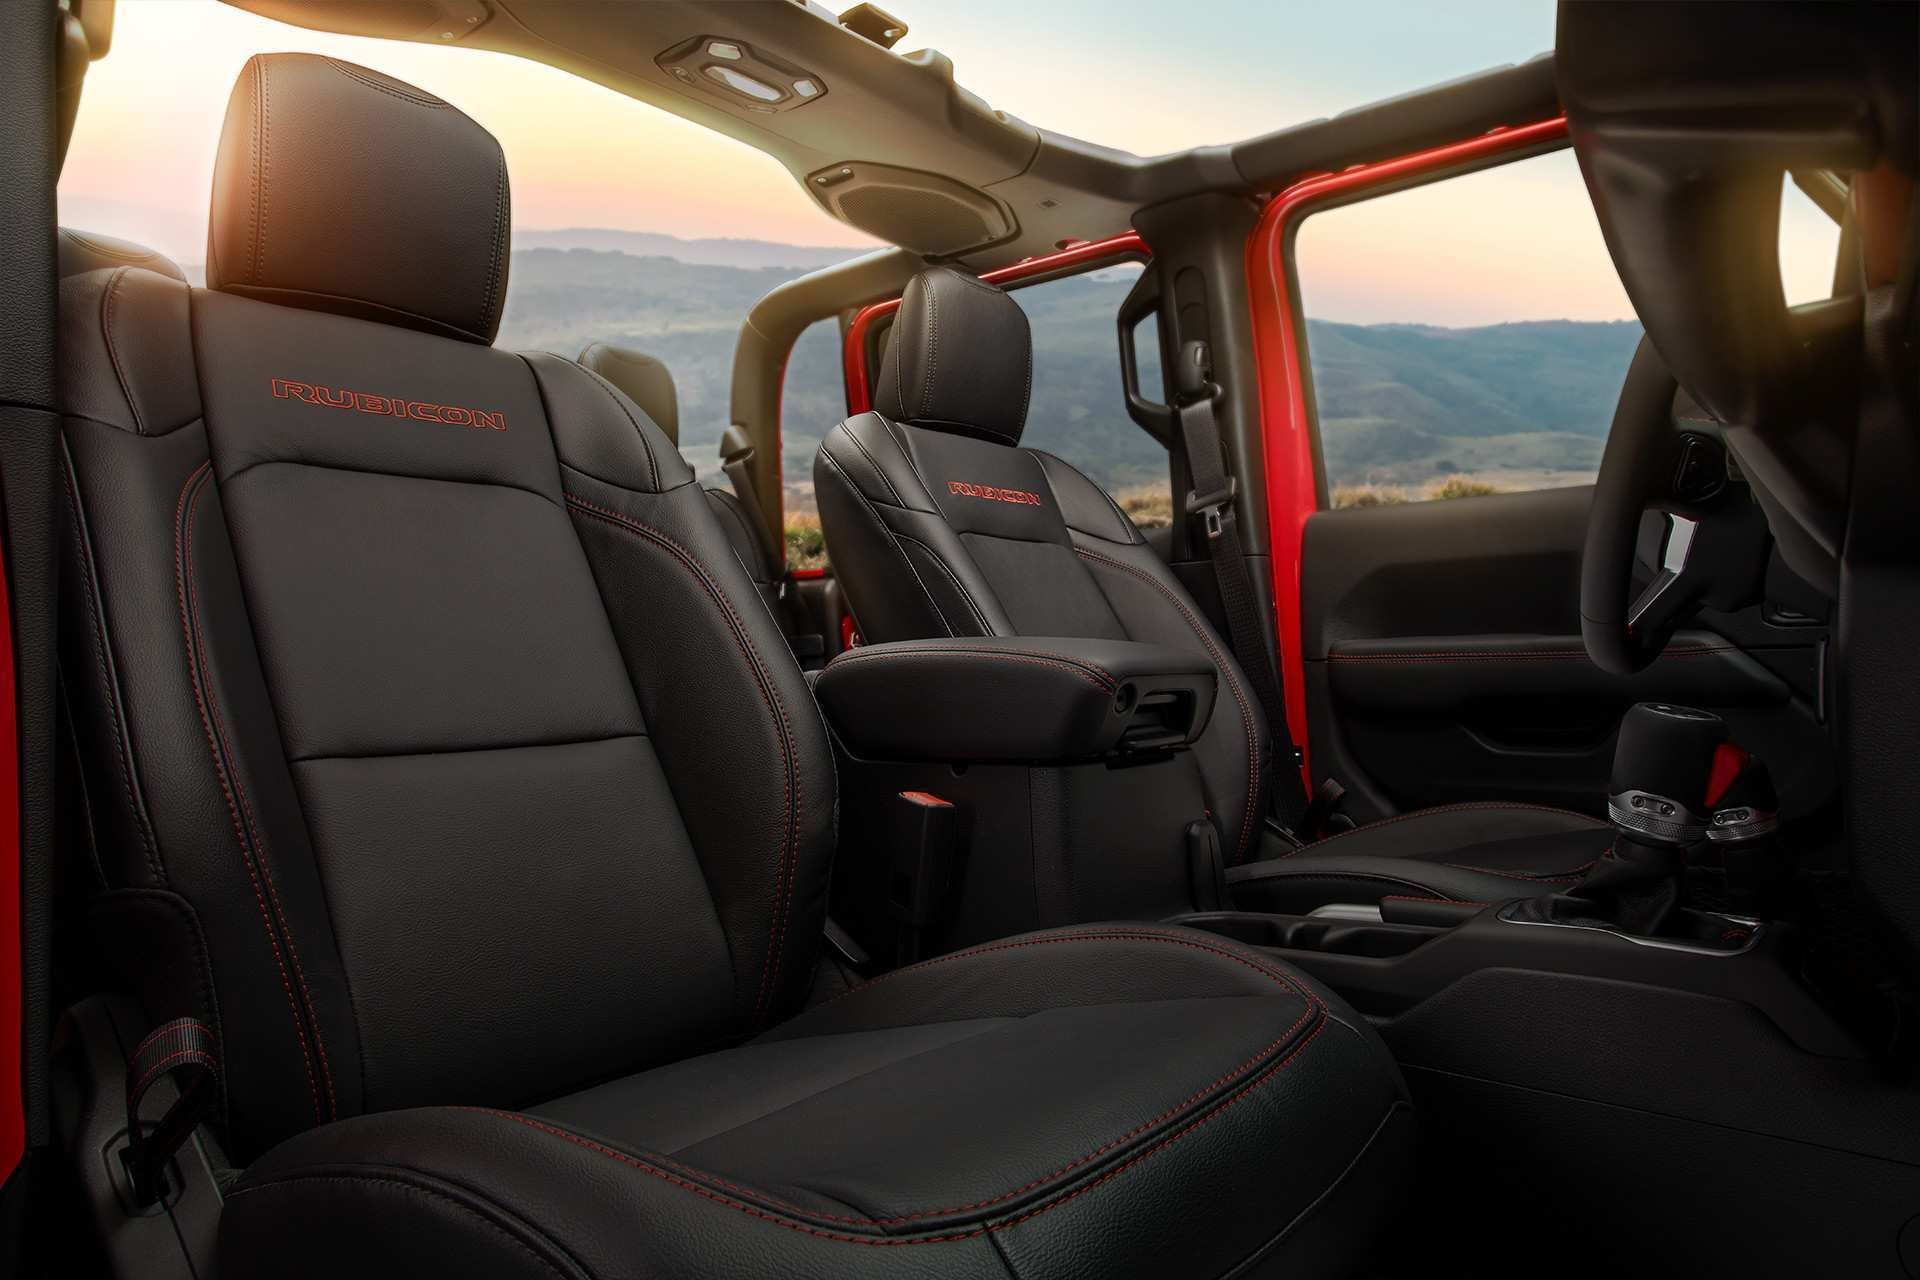 60 All New 2020 Jeep Gladiator Interior Release Date